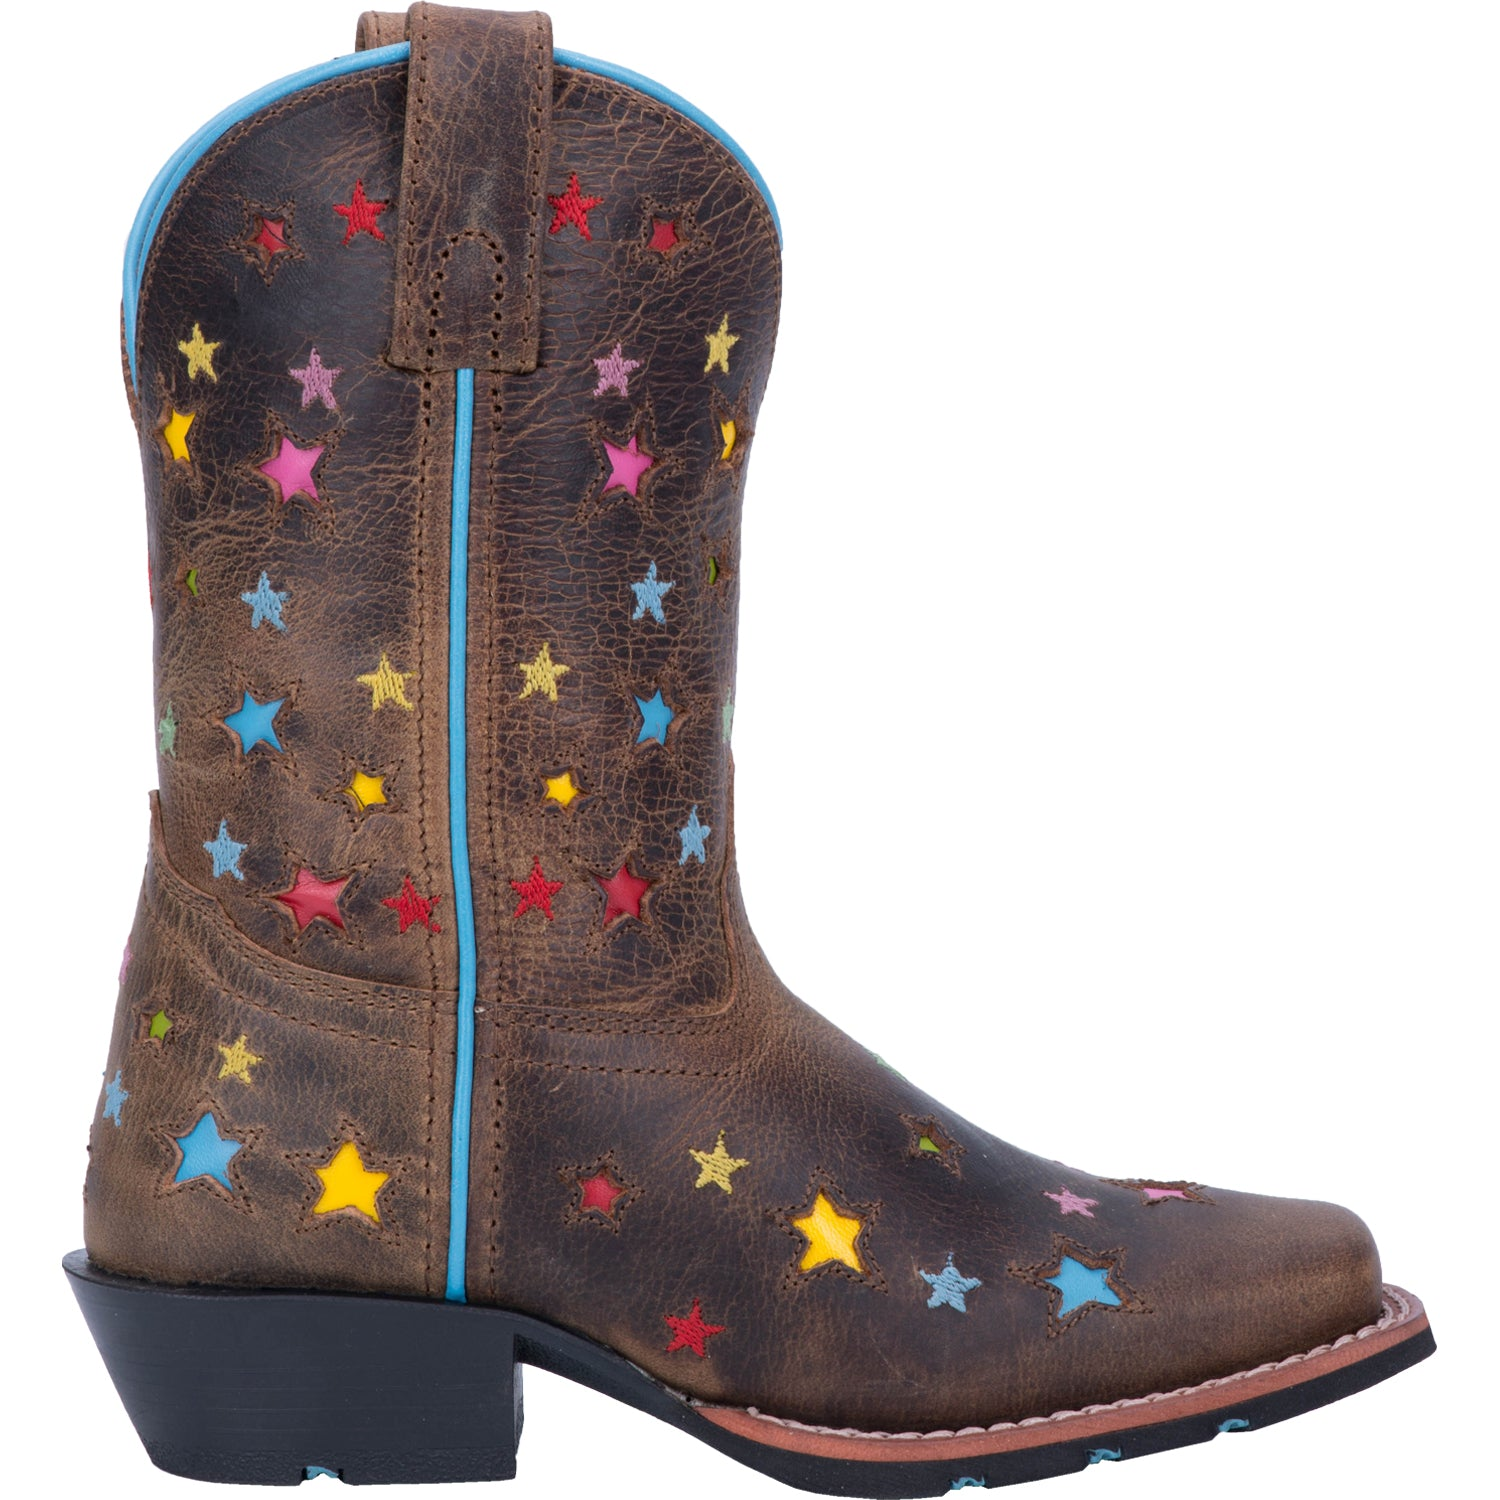 STARLETT LEATHER YOUTH BOOT 4197207801898